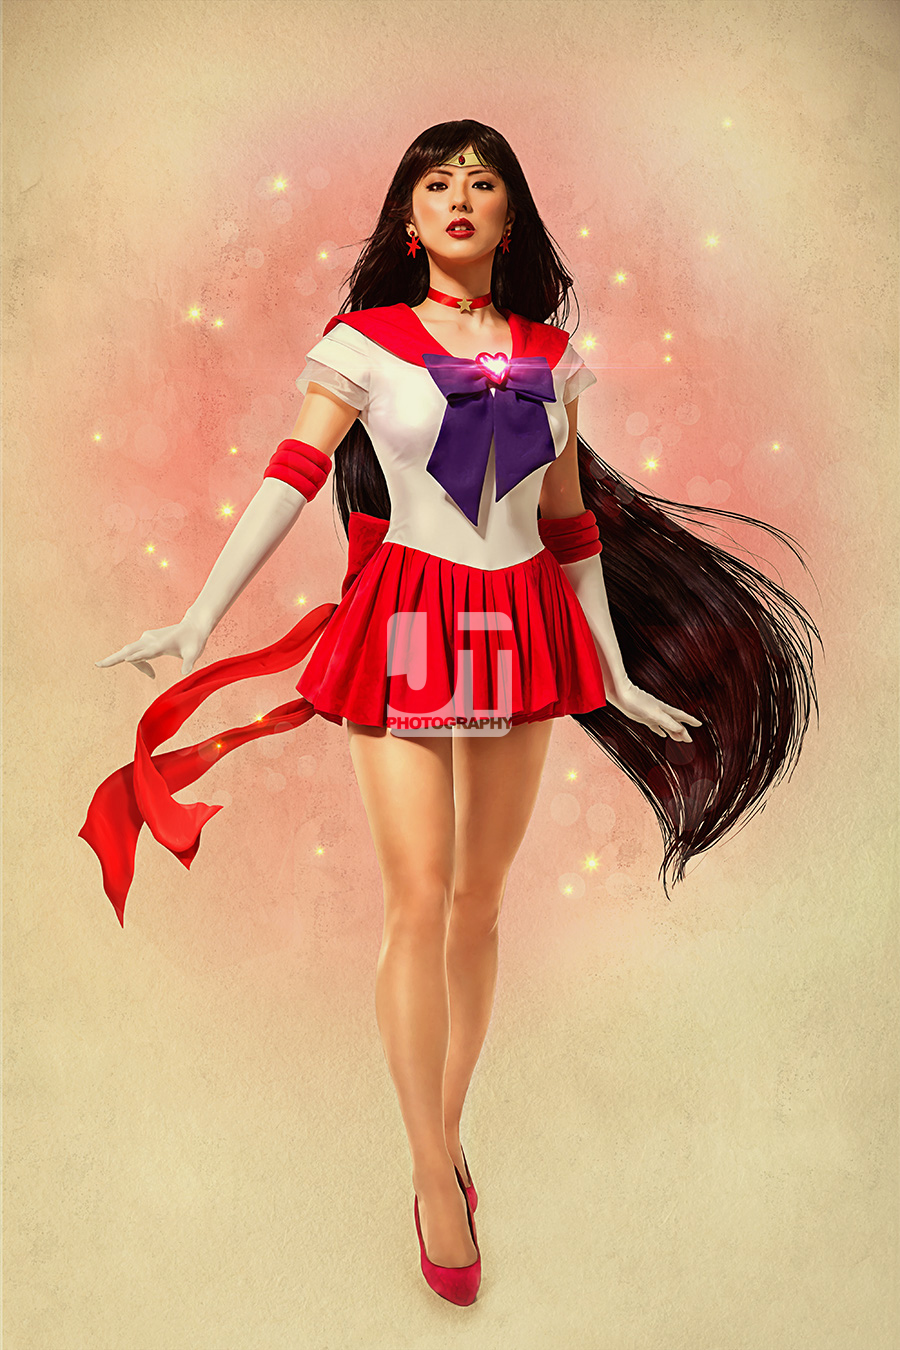 Mars may be the fourth planet from the sun but it burns twice as hot because of Jinri Park as Sailor Mars. (Image courtesy of http://shop.jaytablante.com)